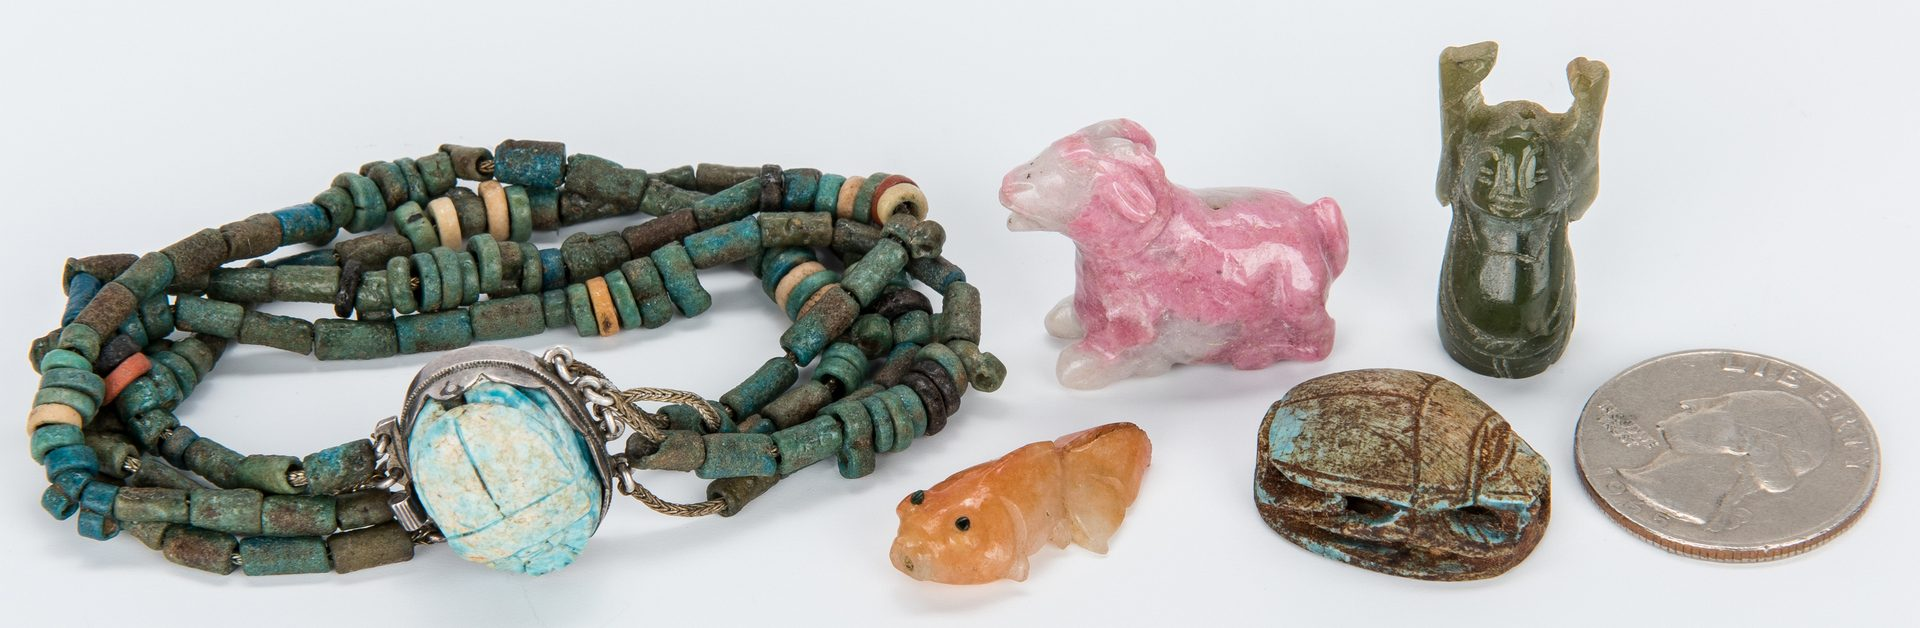 Lot 374: Scarab, Bracelet, & 3 Small Carvings Out of Stone